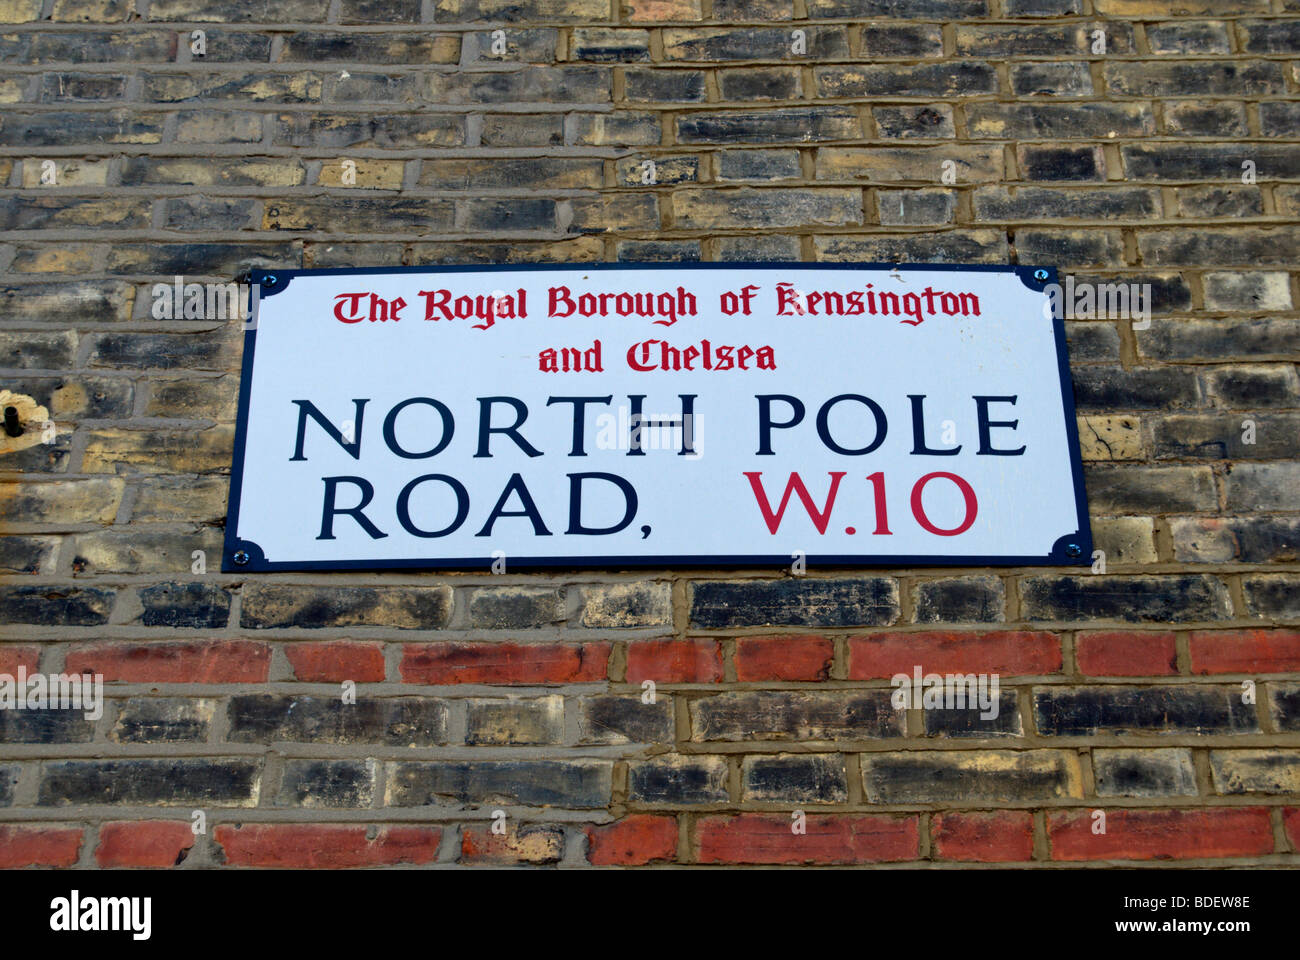 street name sign for north pole road, london w10, england - Stock Image